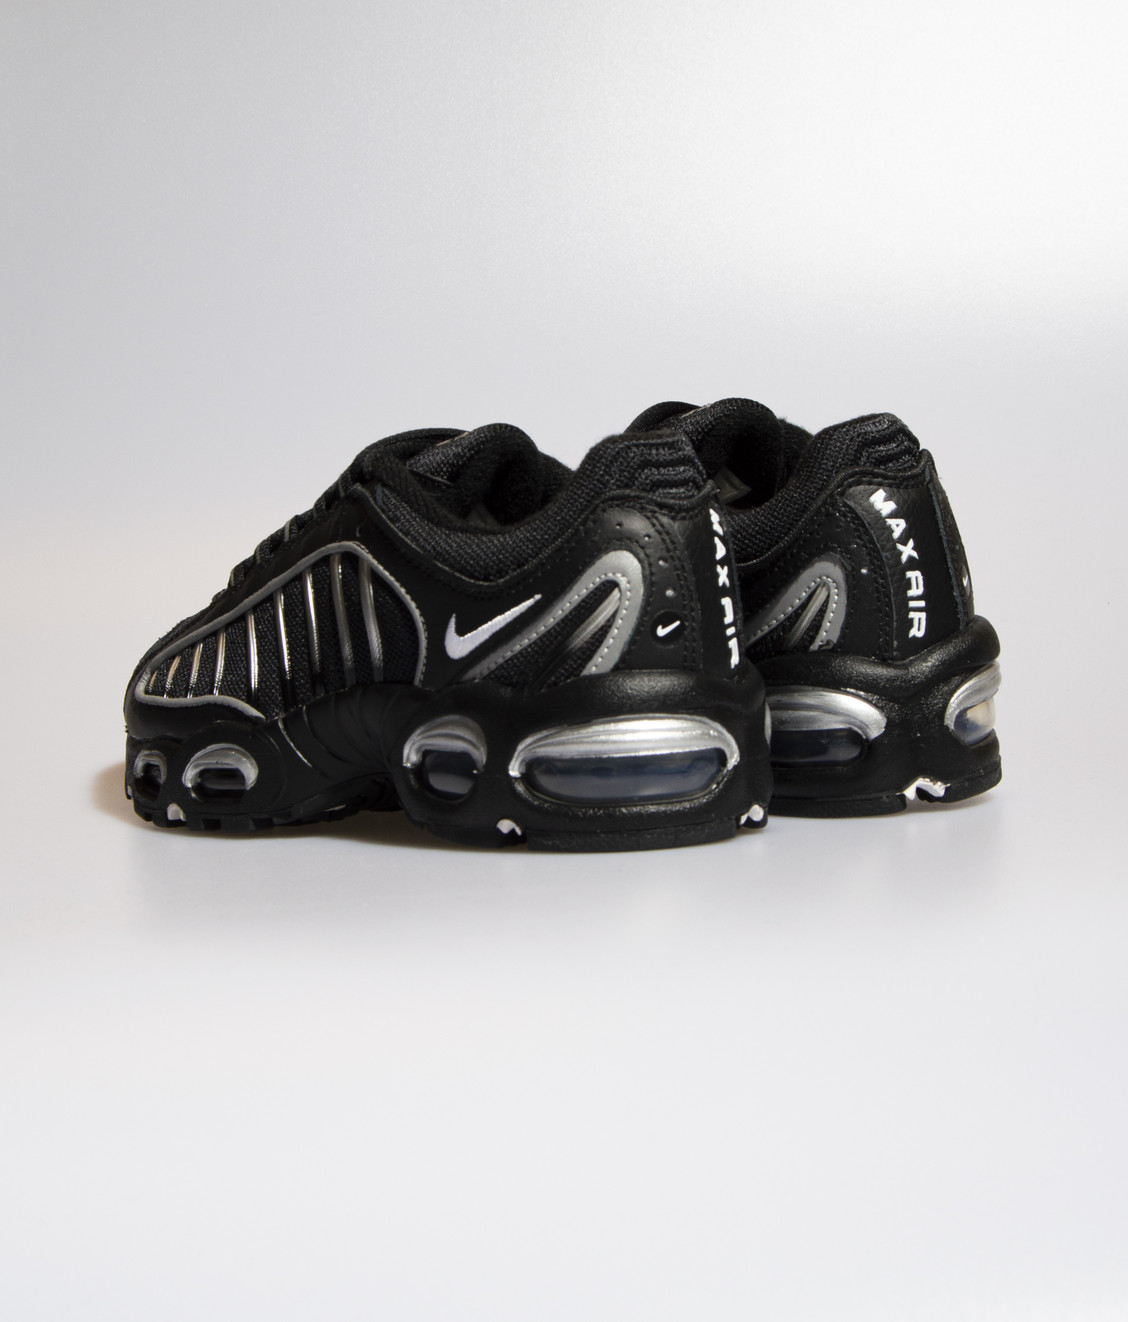 Nike Nike Air Max Tailwind IV Black White